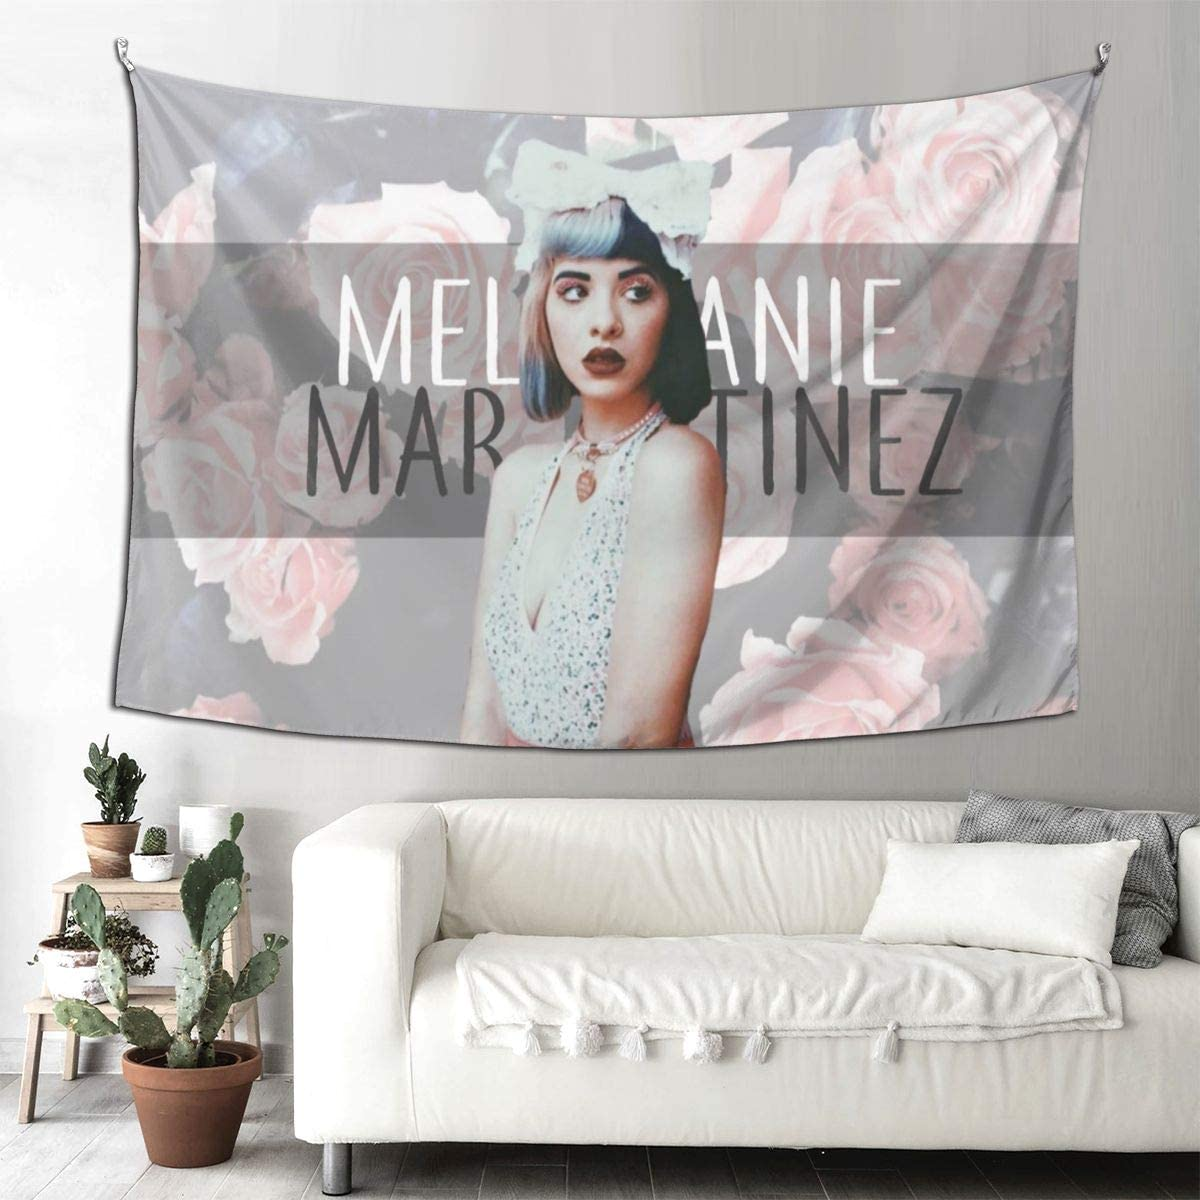 NOT Melanie Martinez Cry Baby Tapestry 9060 Inch